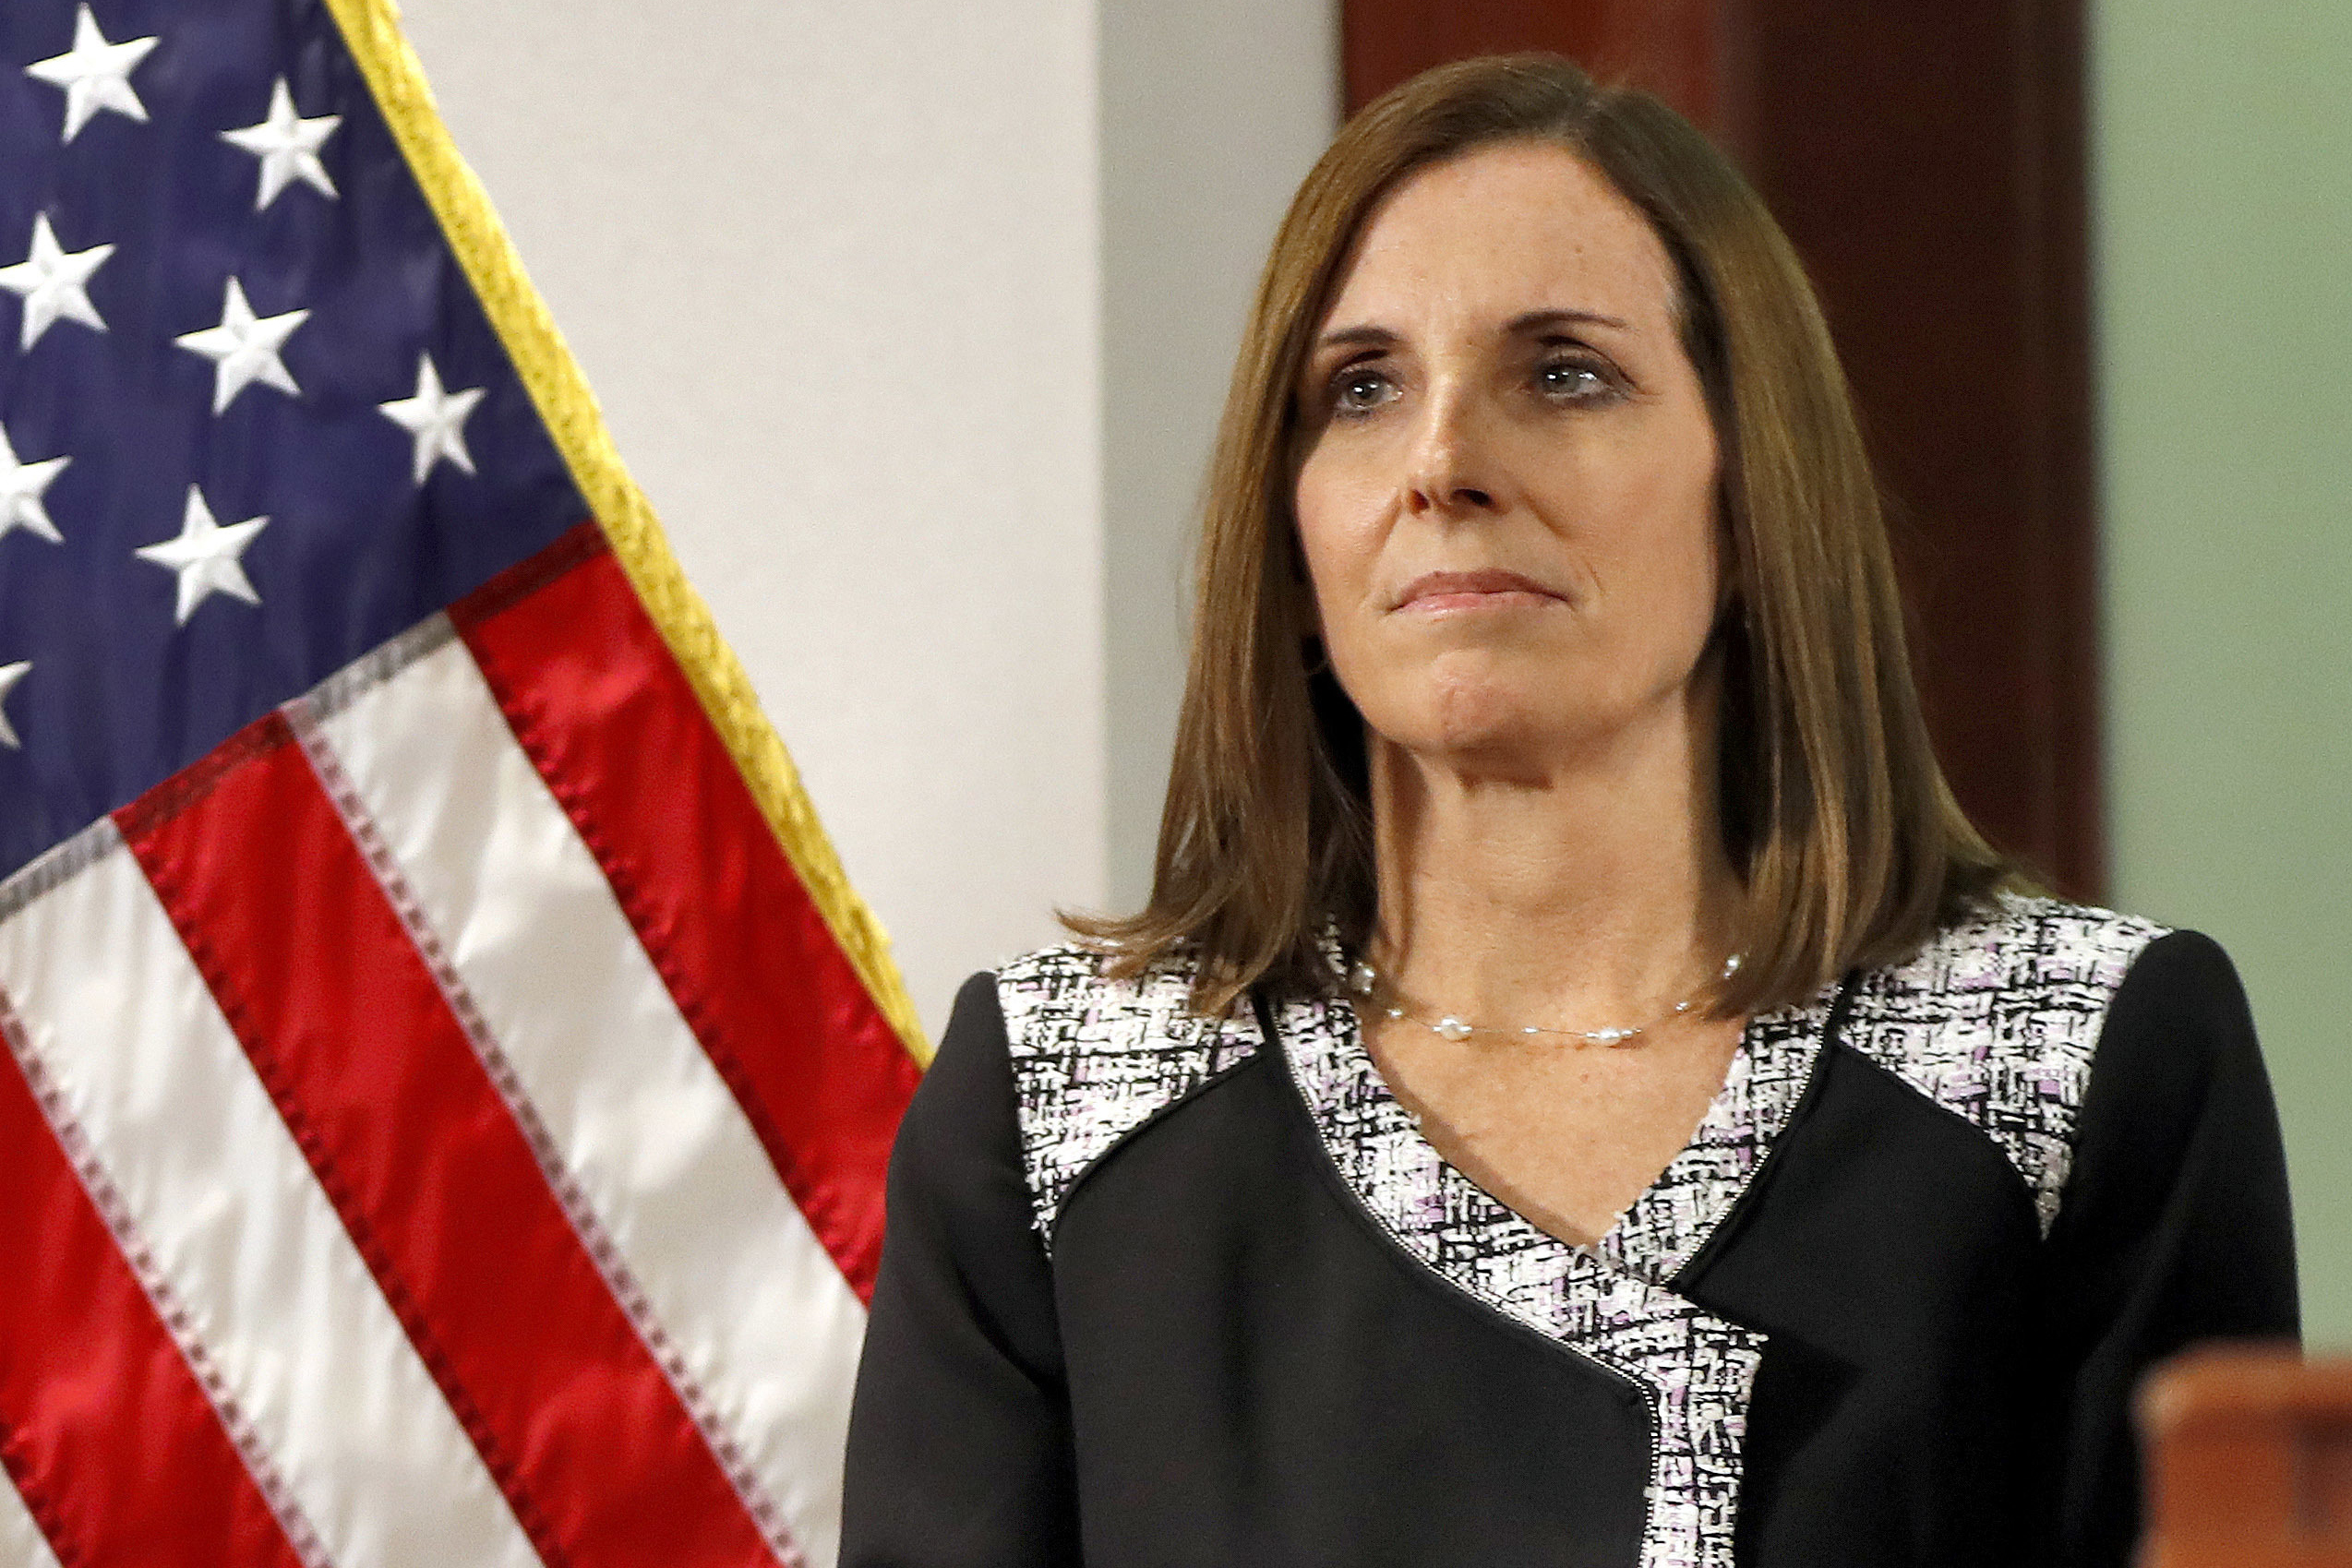 775fee318893a Sen. McSally has ideas about preventing sexual assaults at service academies